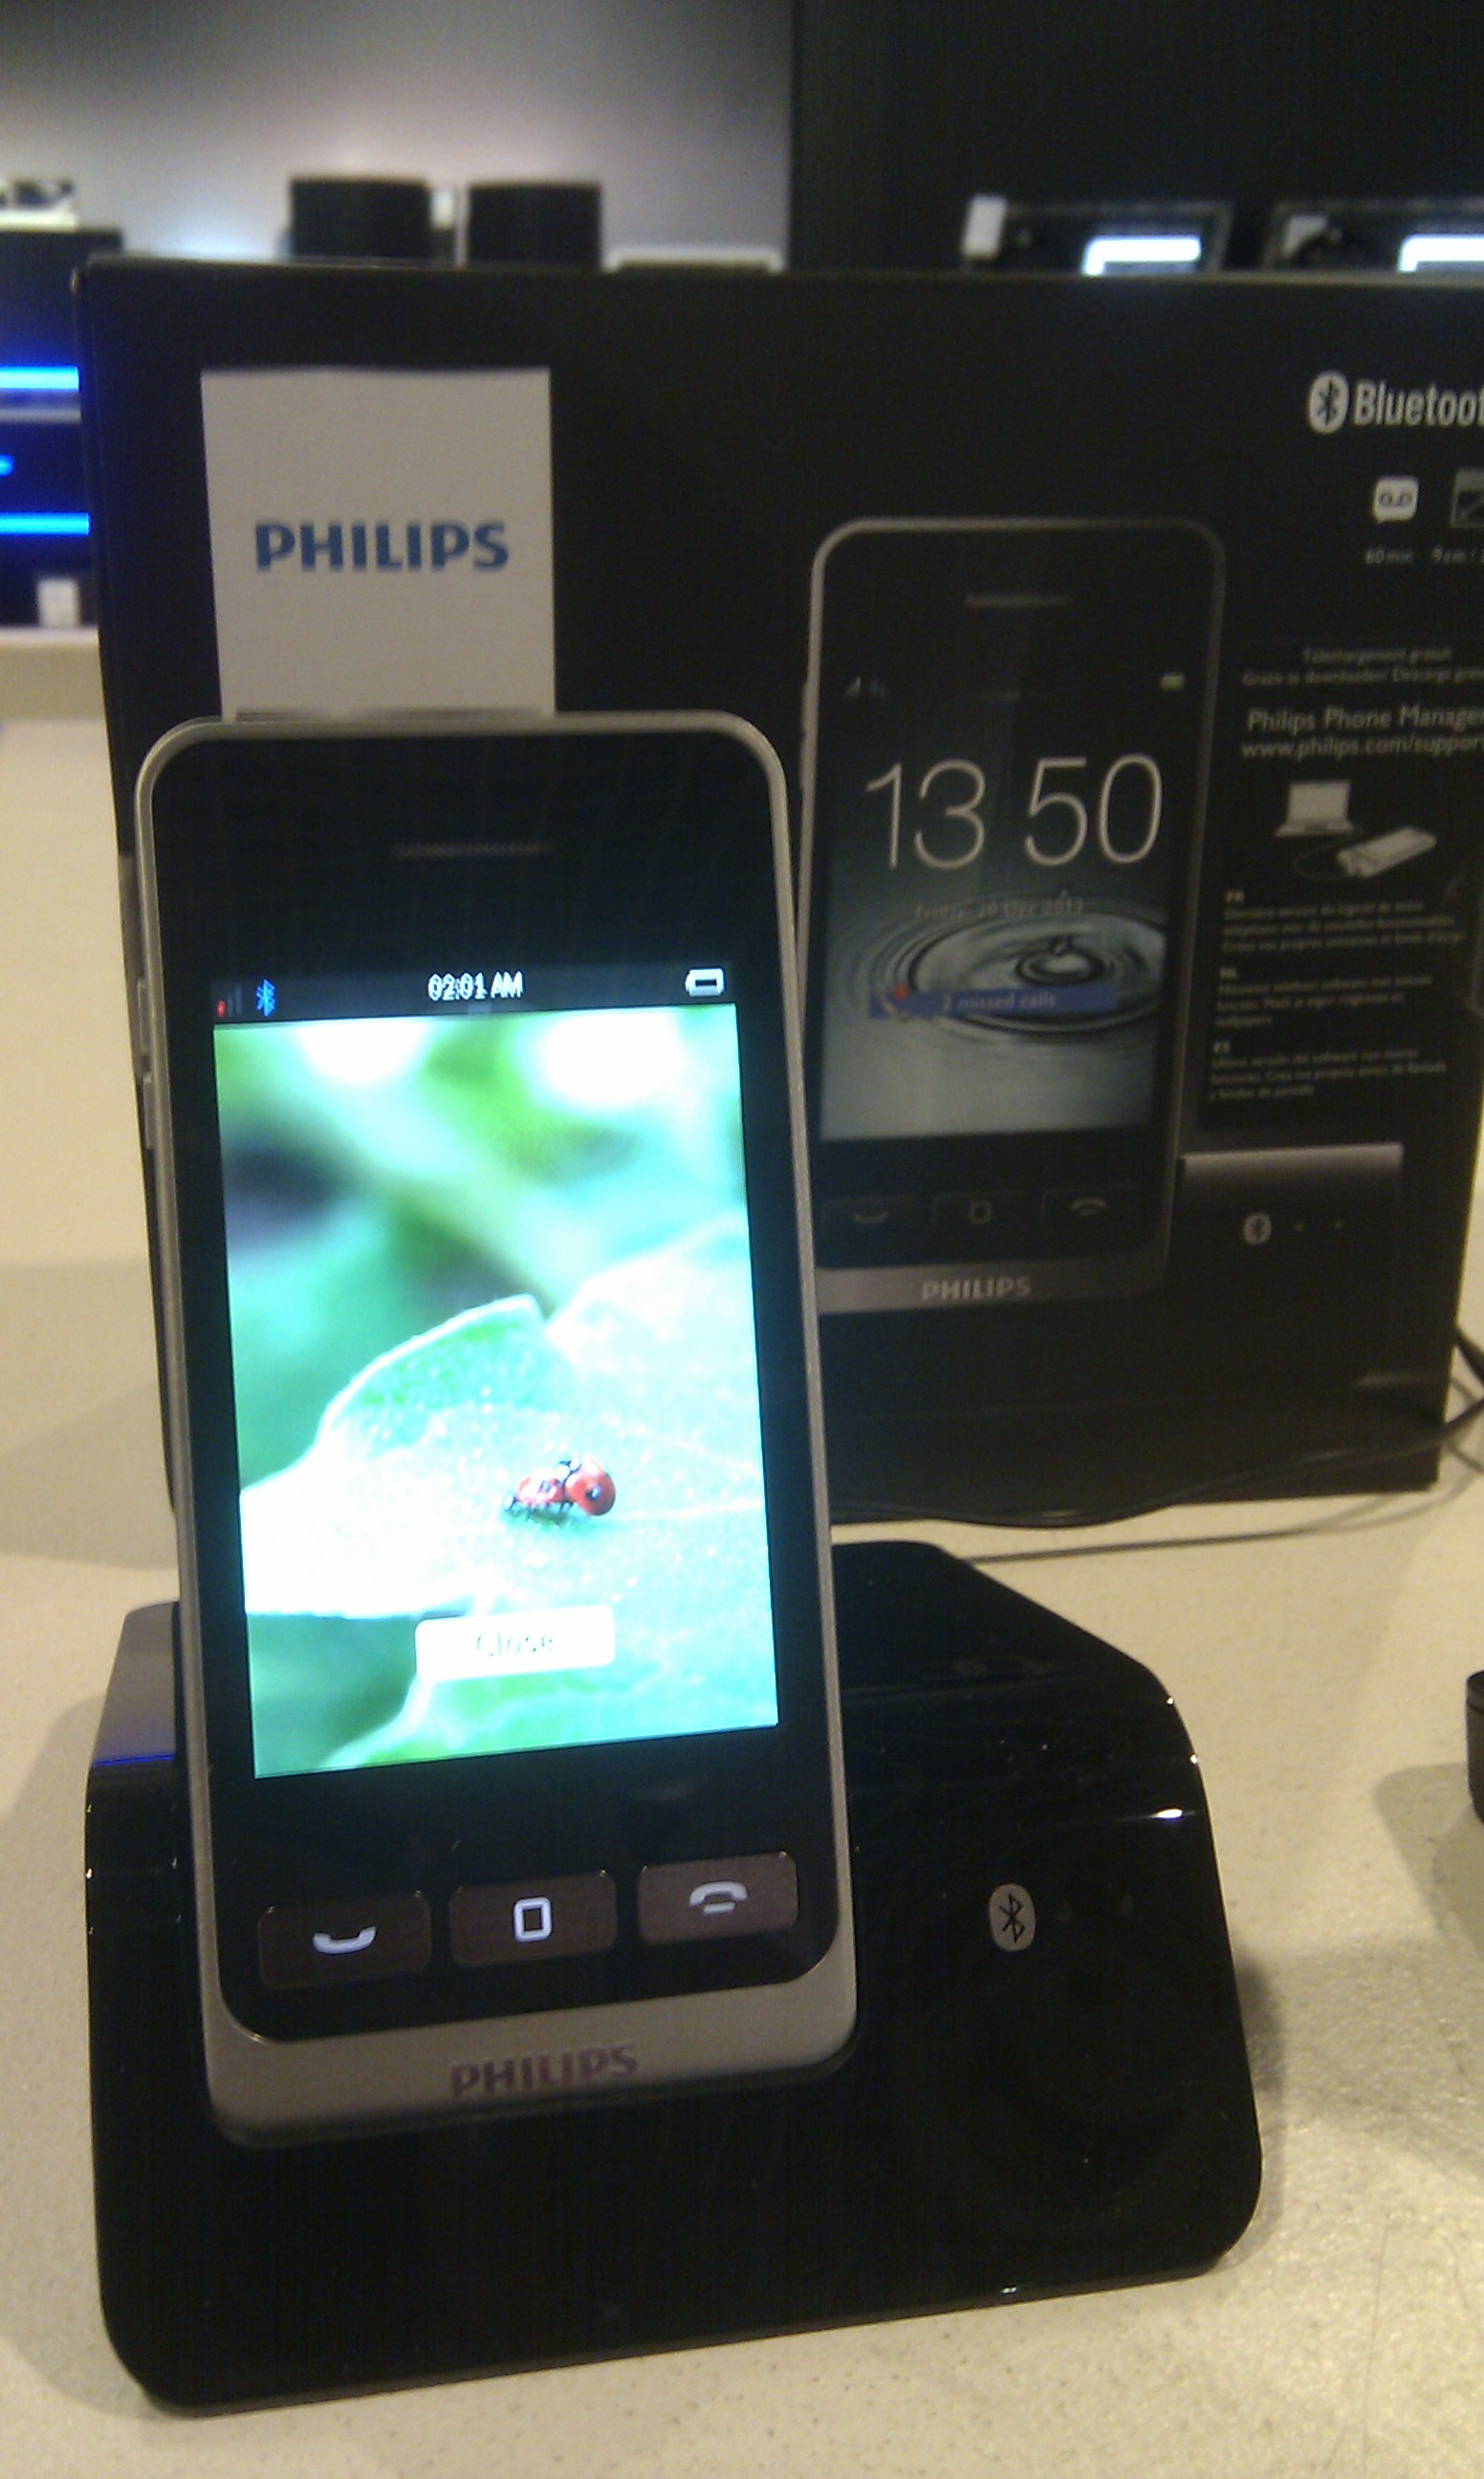 Philips MobileLink Digital cordless phone S10